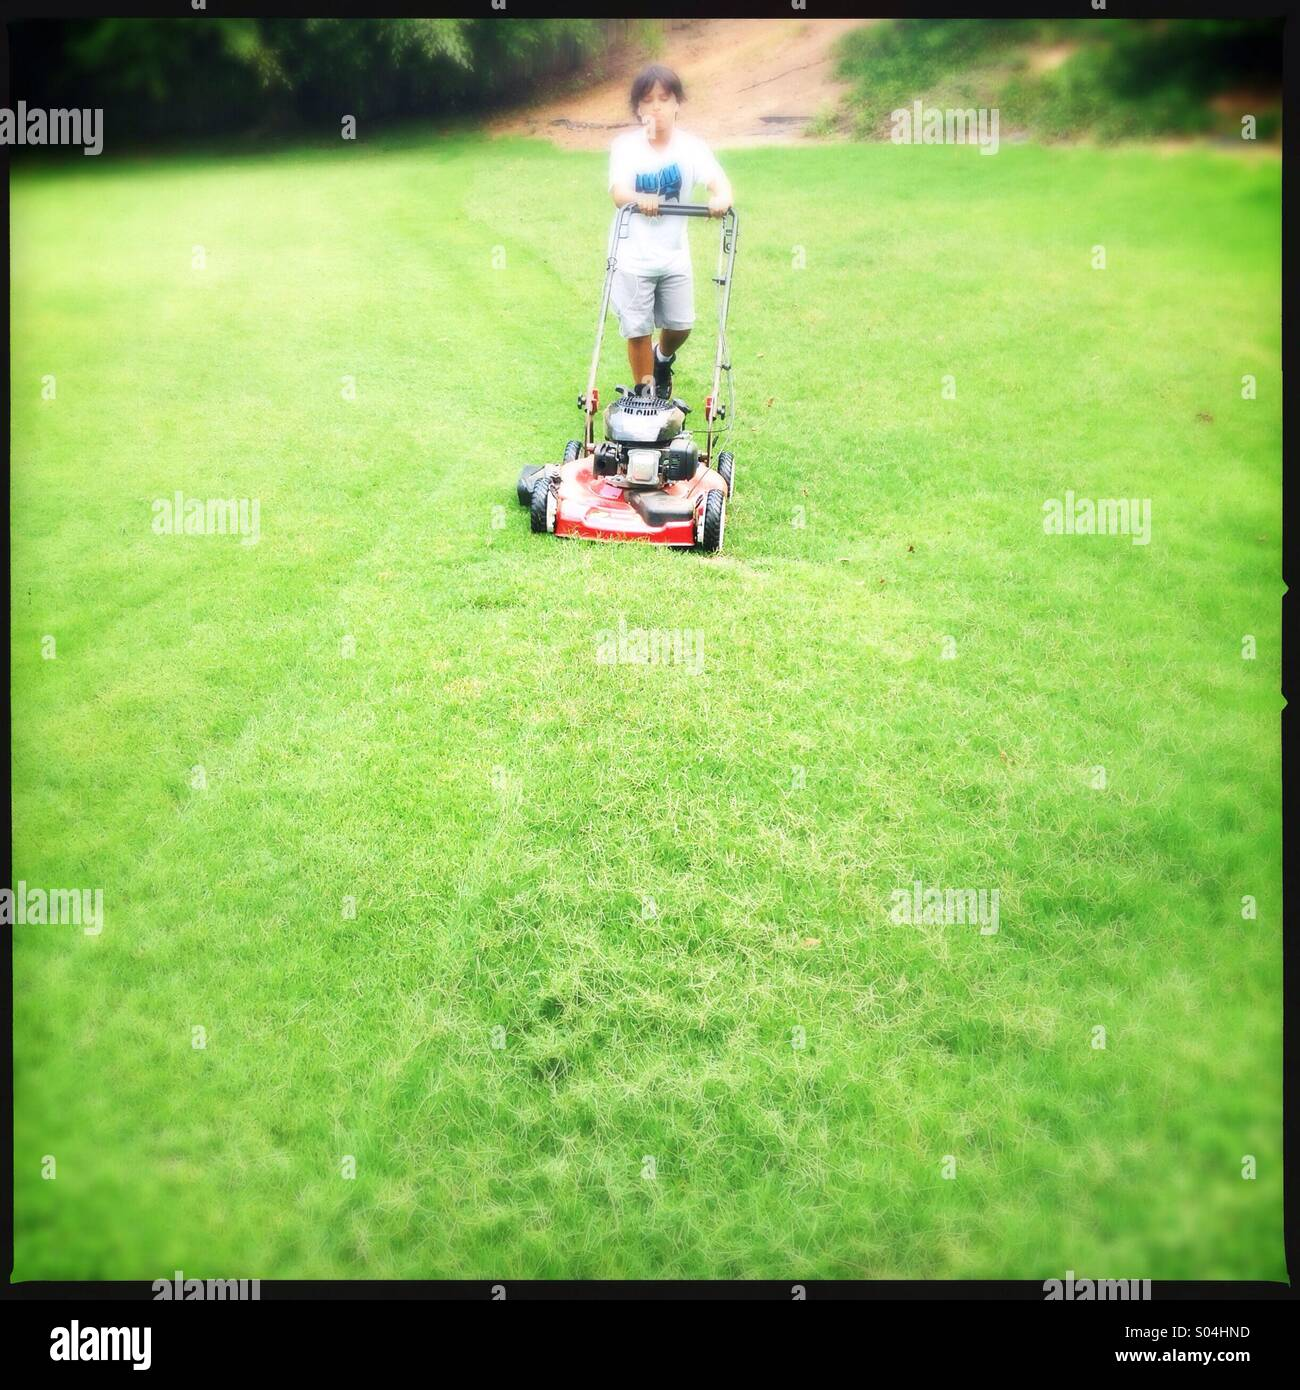 Little boy cutting grass - Stock Image